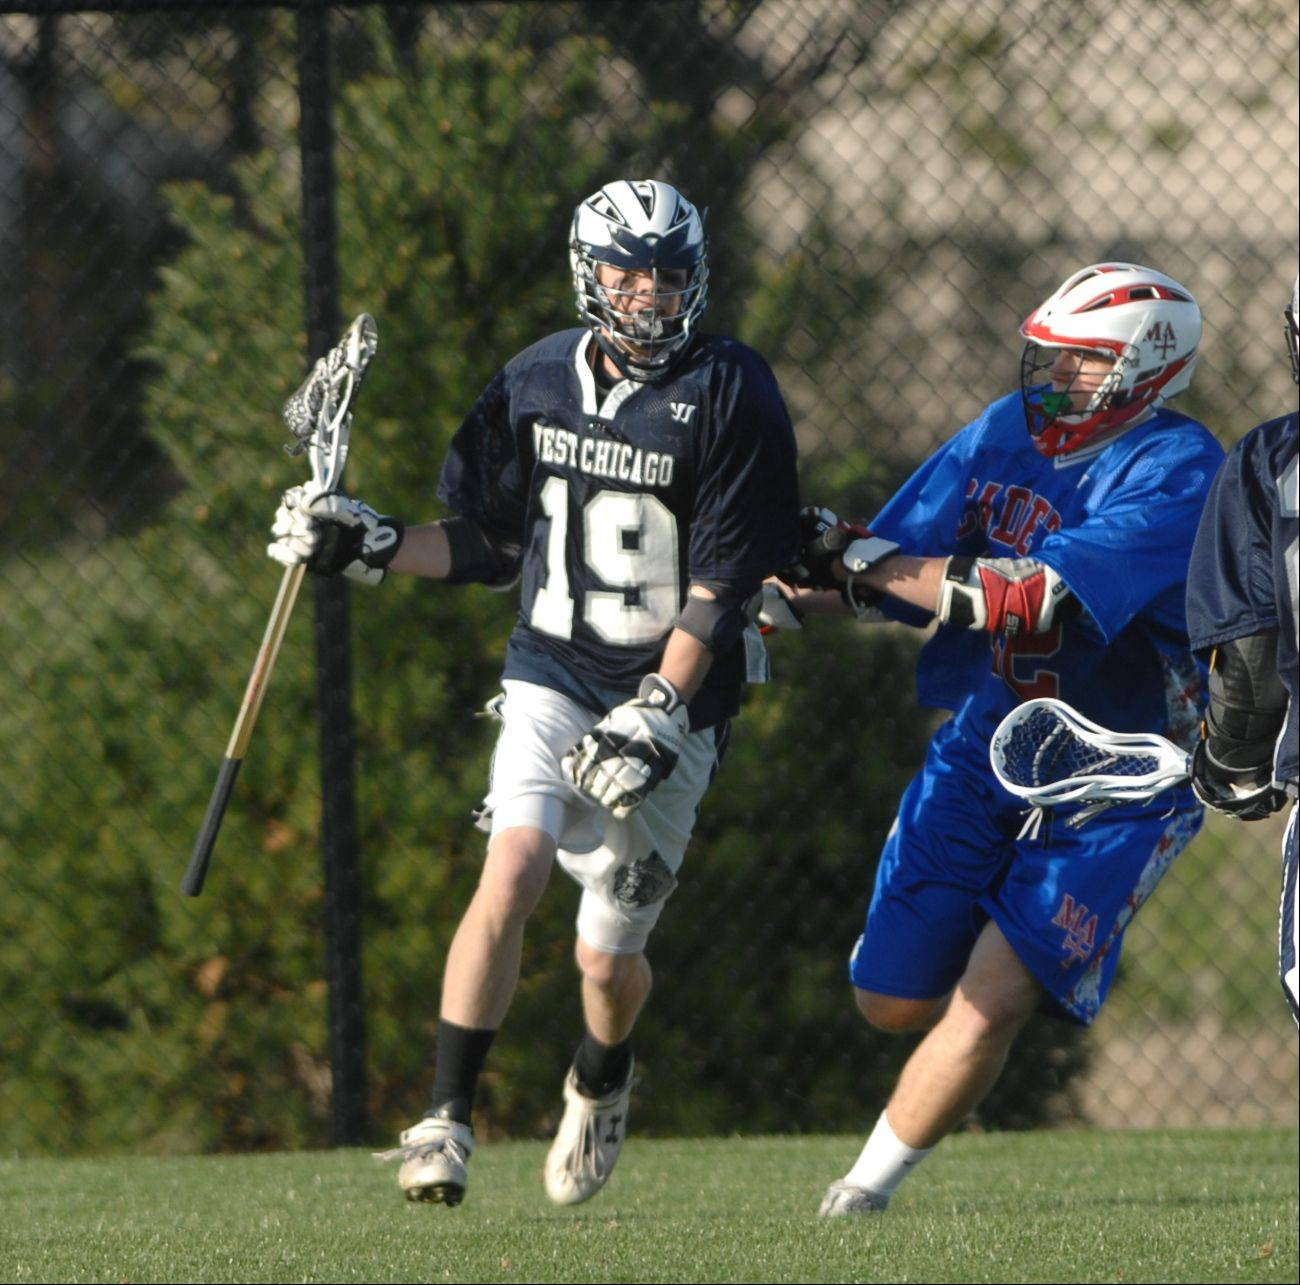 Marmion Academy hosts West Chicago Wednesday for boys lacrosse.